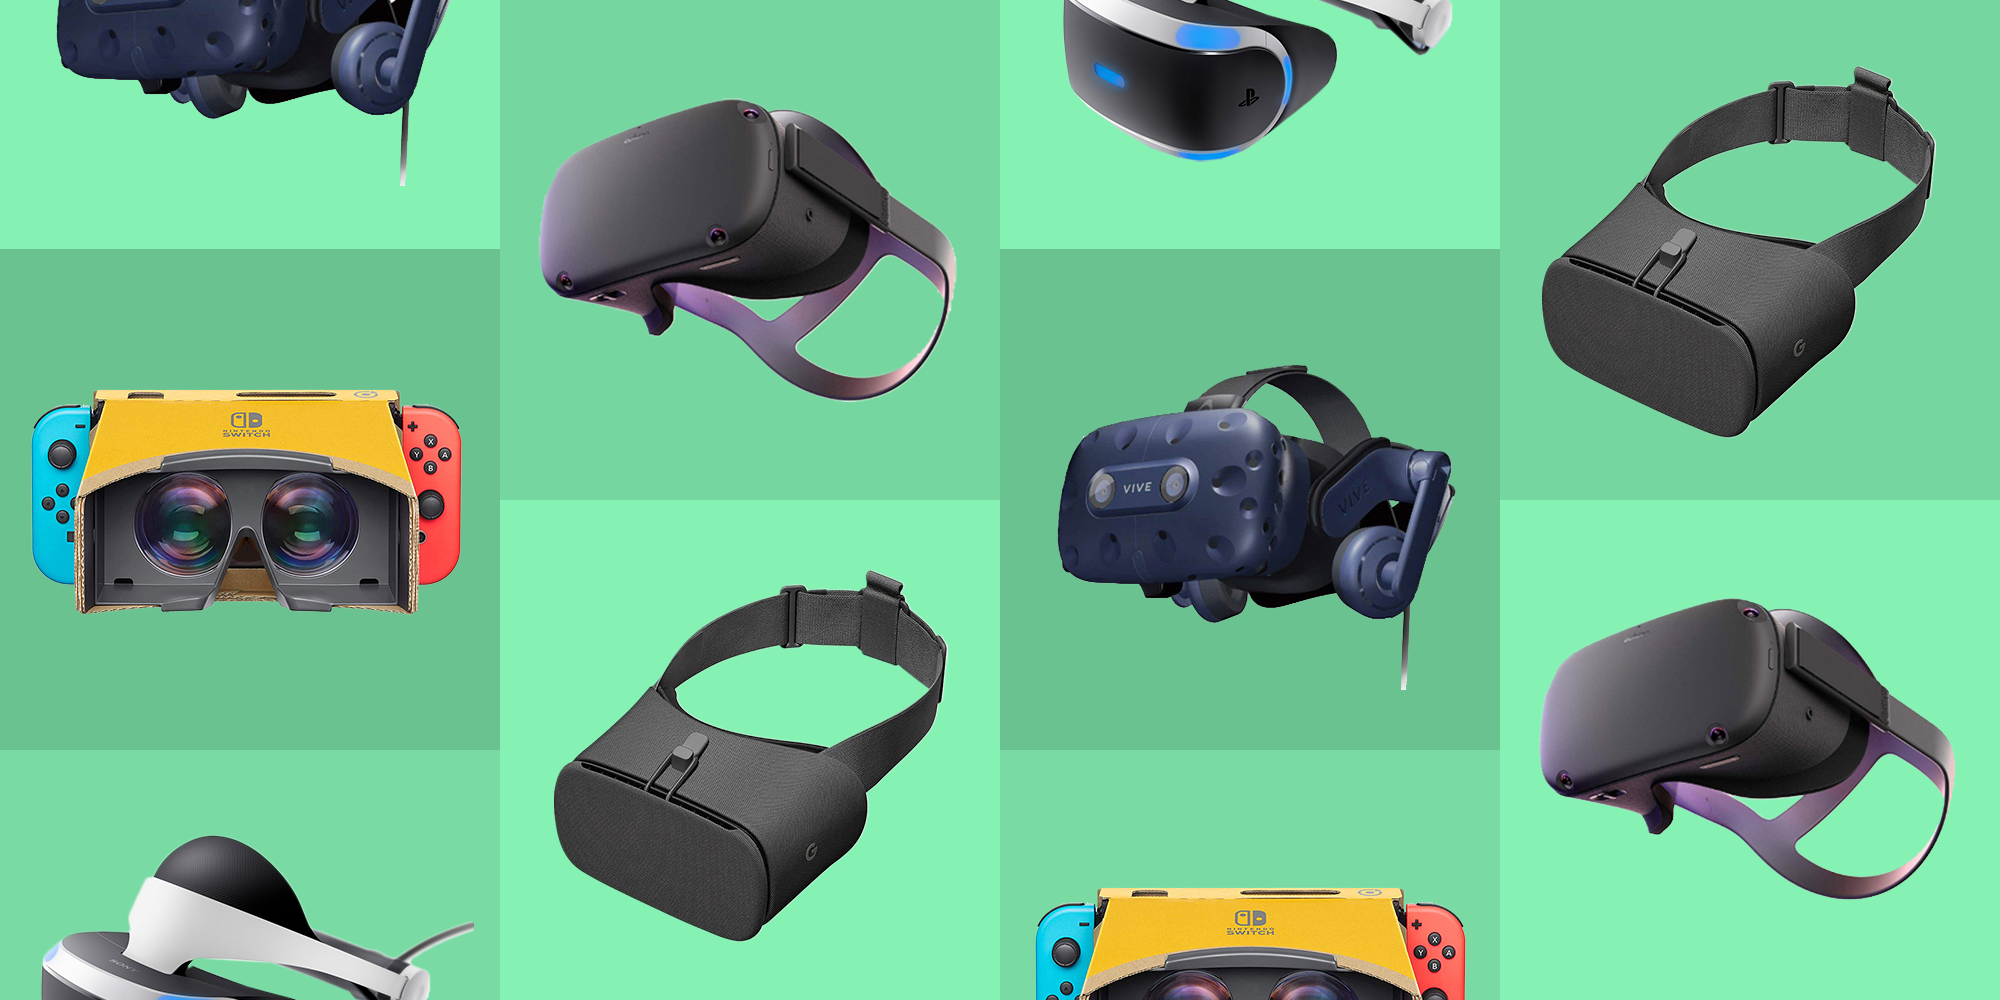 Best VR Headsets 2019 - Top 5 Virtual Reality Gaming Headsets on PC